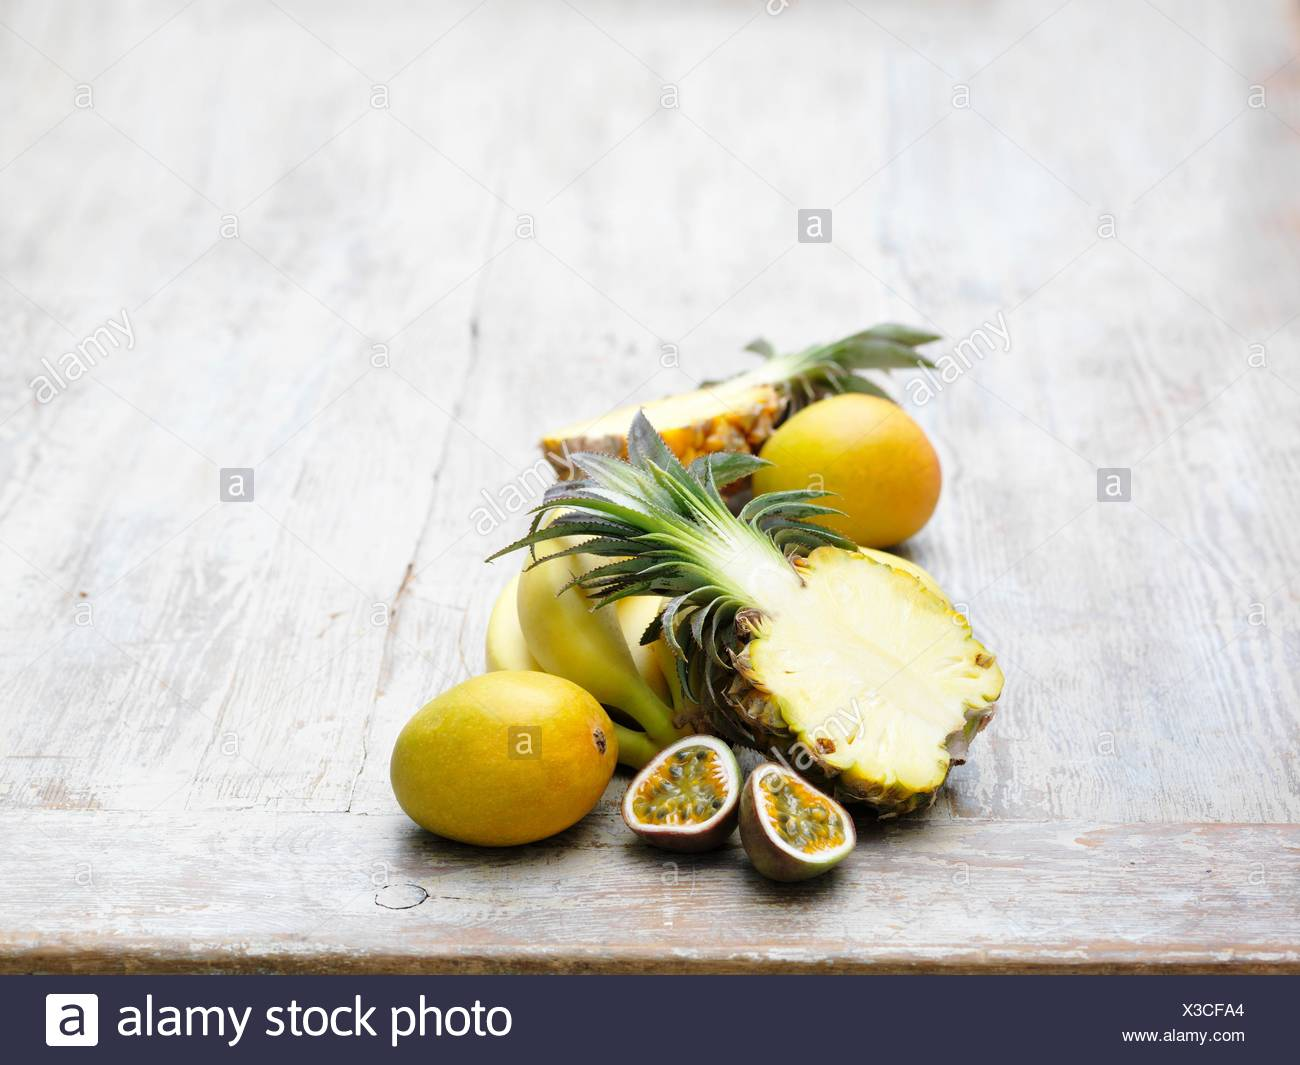 Ingredients for tropical juice on whitewashed wooden table - Stock Image